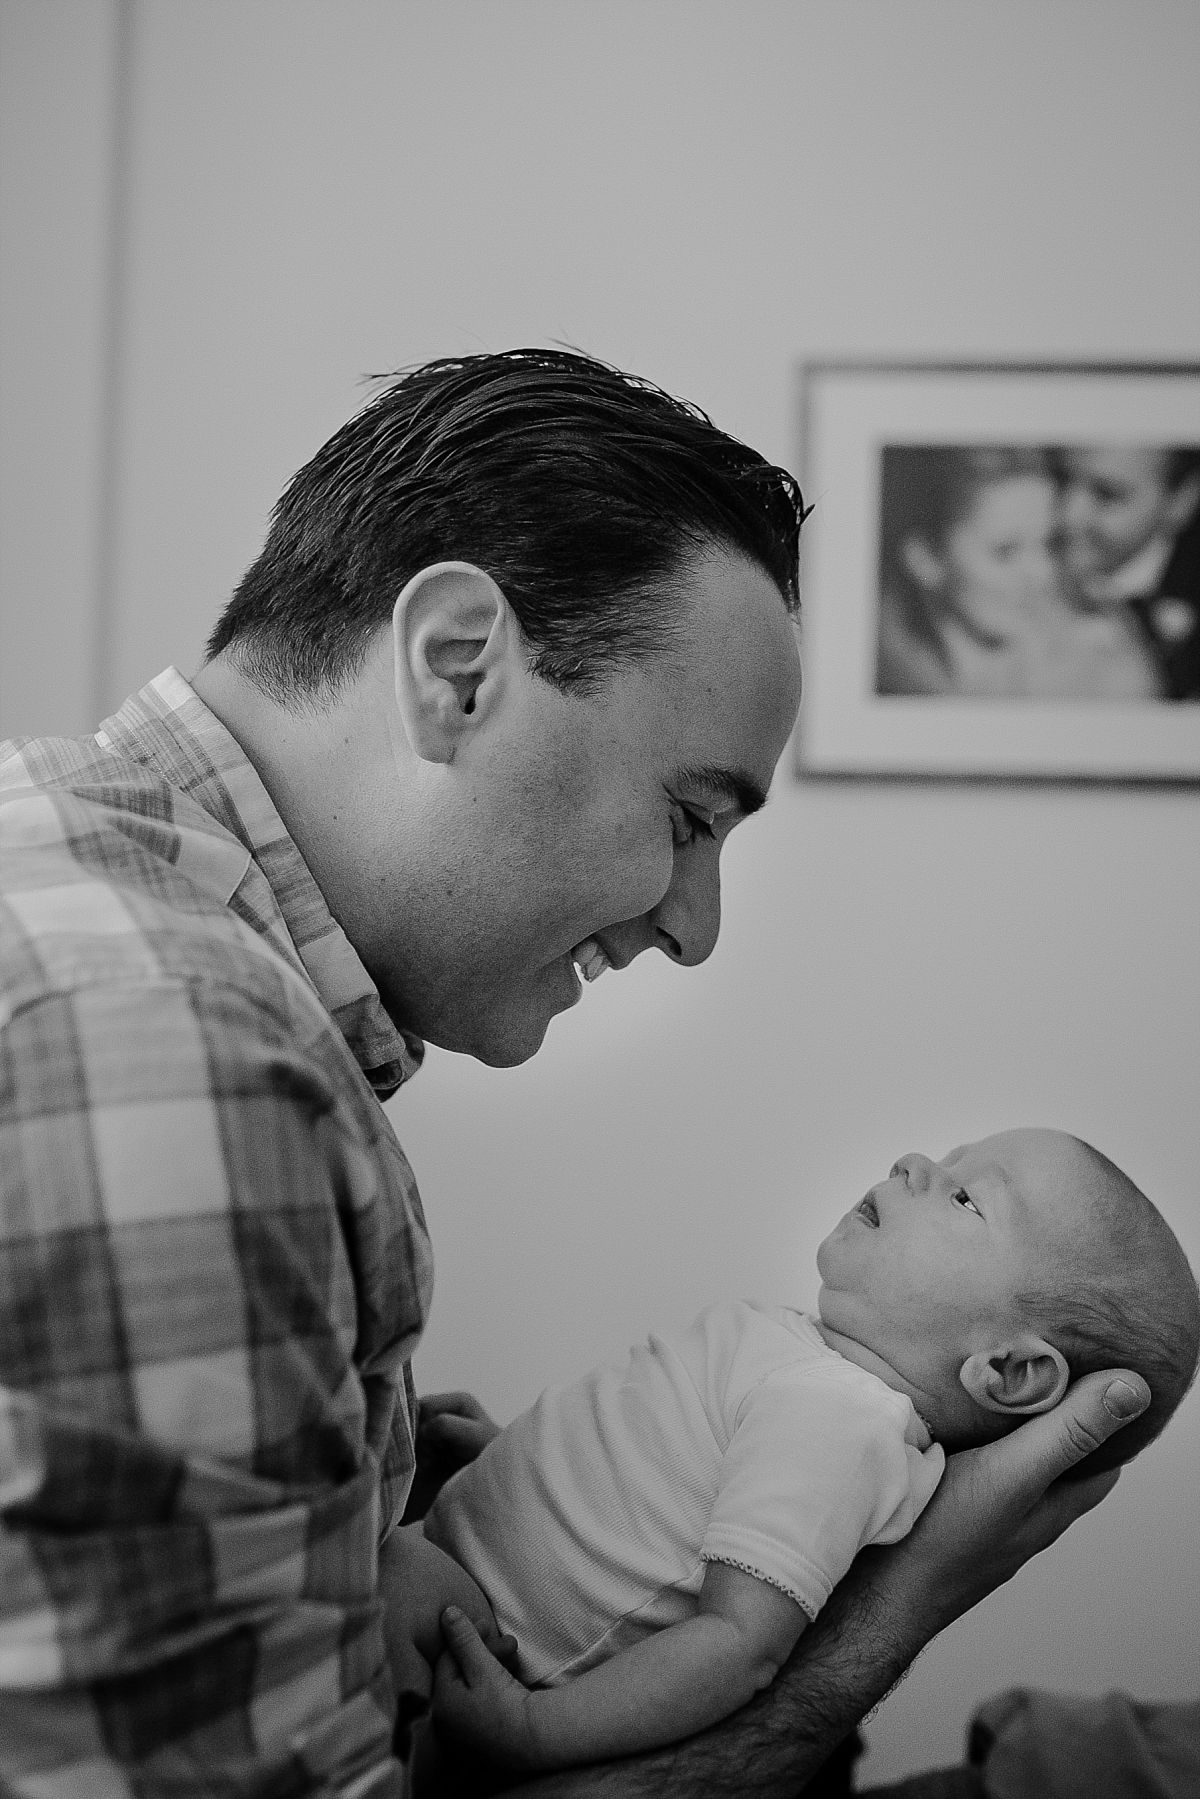 dad holds newborn daughter during family lifestyle session in downtown manhattan. photo by nyc newborn photographer krystil mcdowall